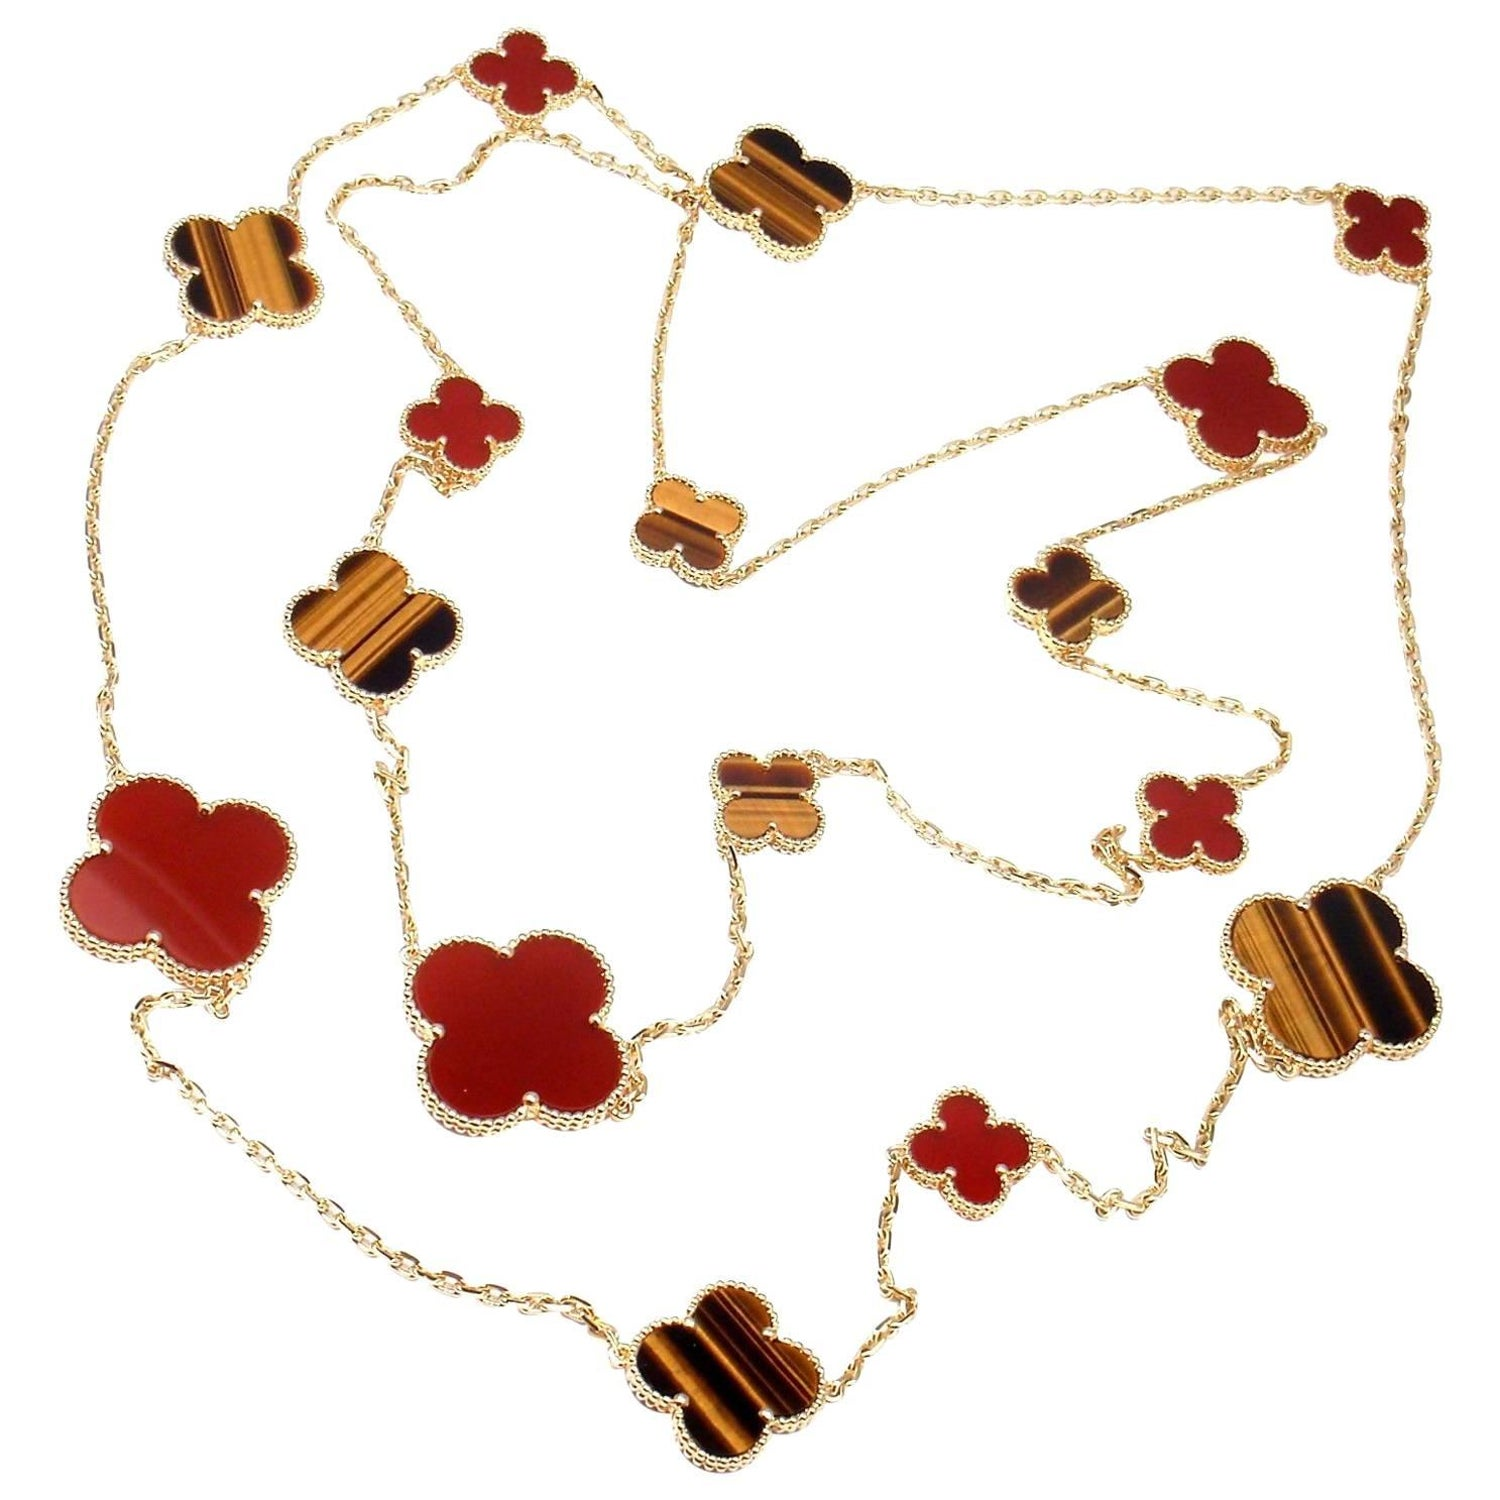 Yafa signed jewels new york ny 1stdibs page 4 - Van Cleef Amp Arpels Magic Alhambra Carnelian Tiger Eye 16 Motif Long Necklace